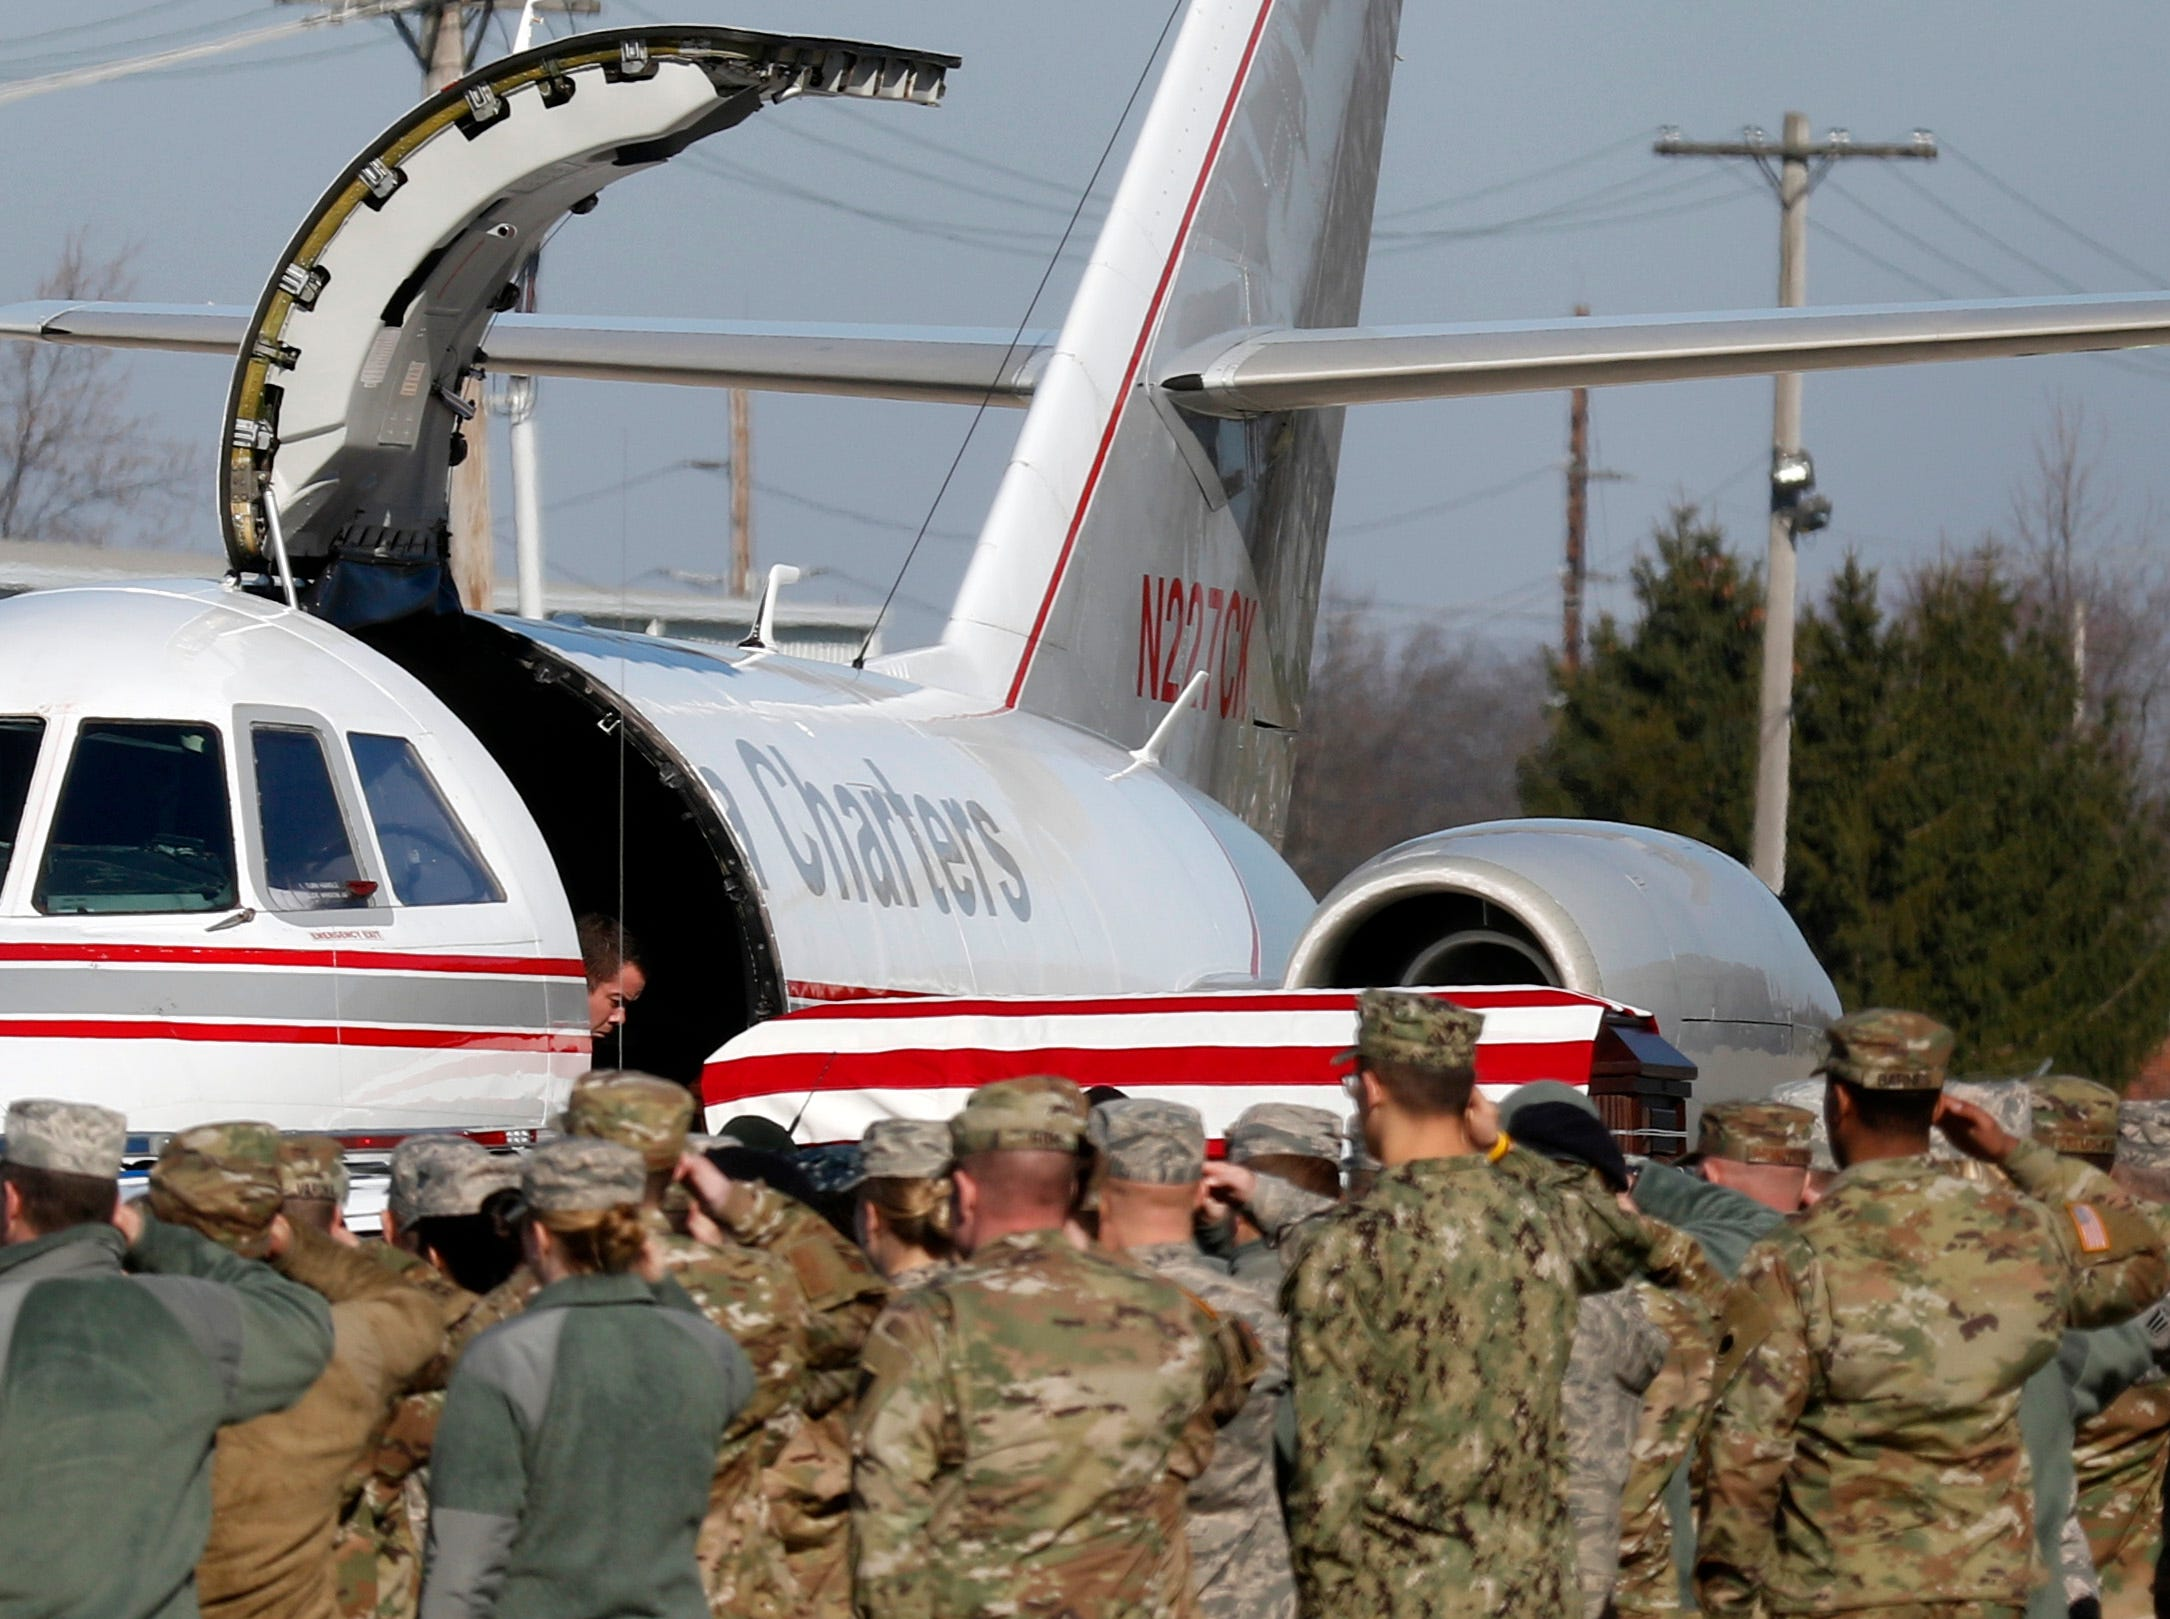 Military personnel salute as the casket of Sgt. Joseph Collette is unloaded from a plane Wednesday morning, April 3, 2019, at Rickenbacker International Airport in Columubs. Collette, 29, from Lancaster, was killed in combat March 21 in Afghanistan.